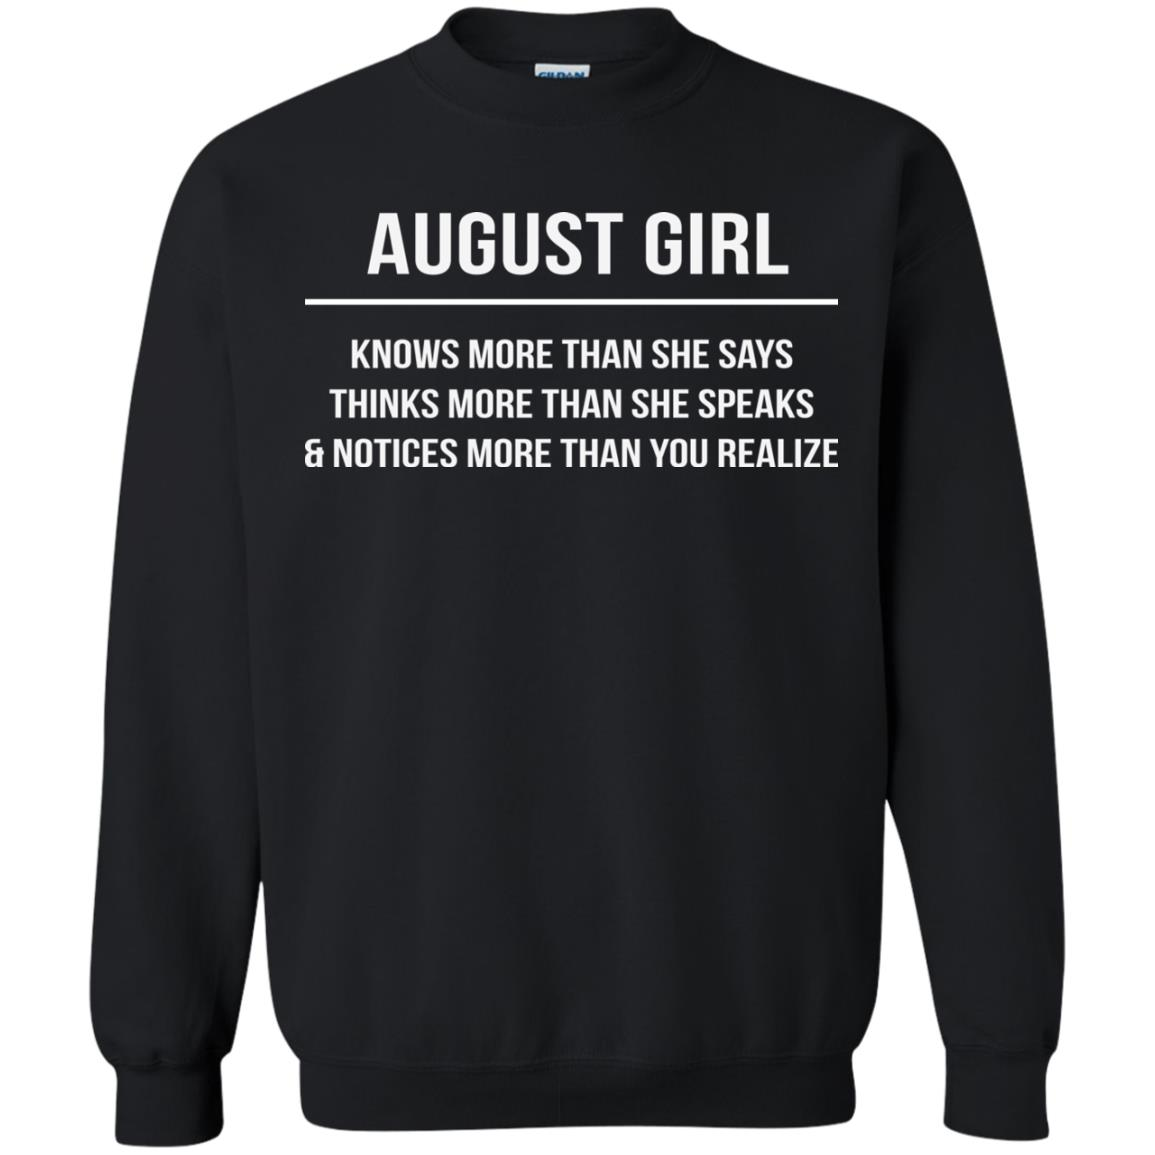 image 2559 - August girl knows more than she says shirt, tank top, hoodie